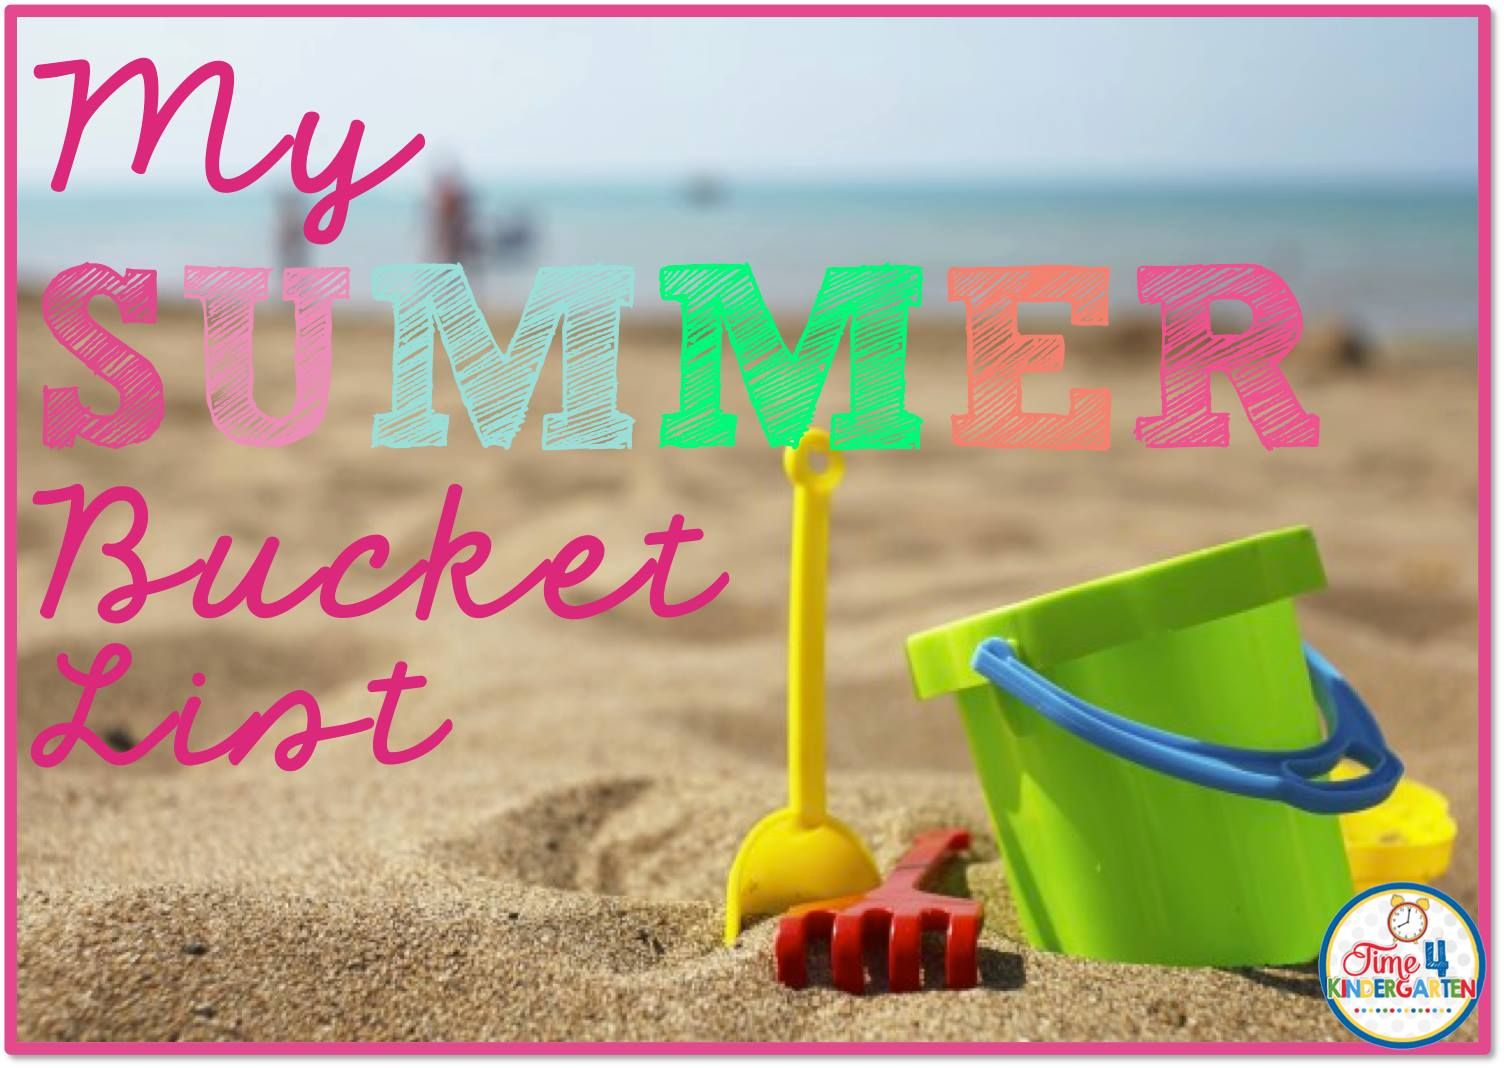 Summer Bucket List from Time 4 Kindergarten!